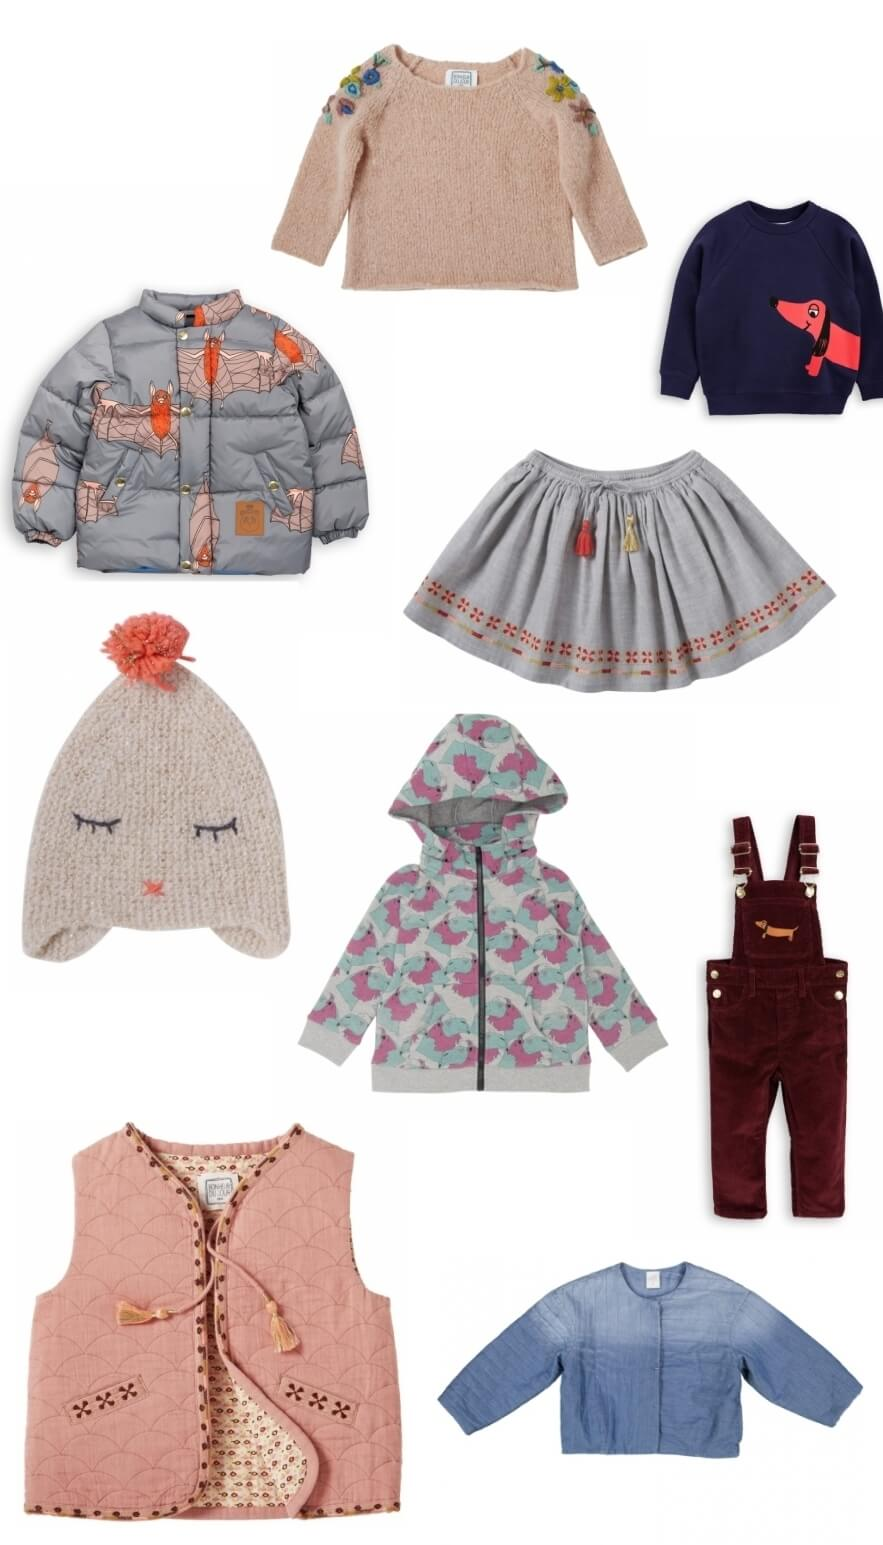 Curated previous seasons clothes for babies and children